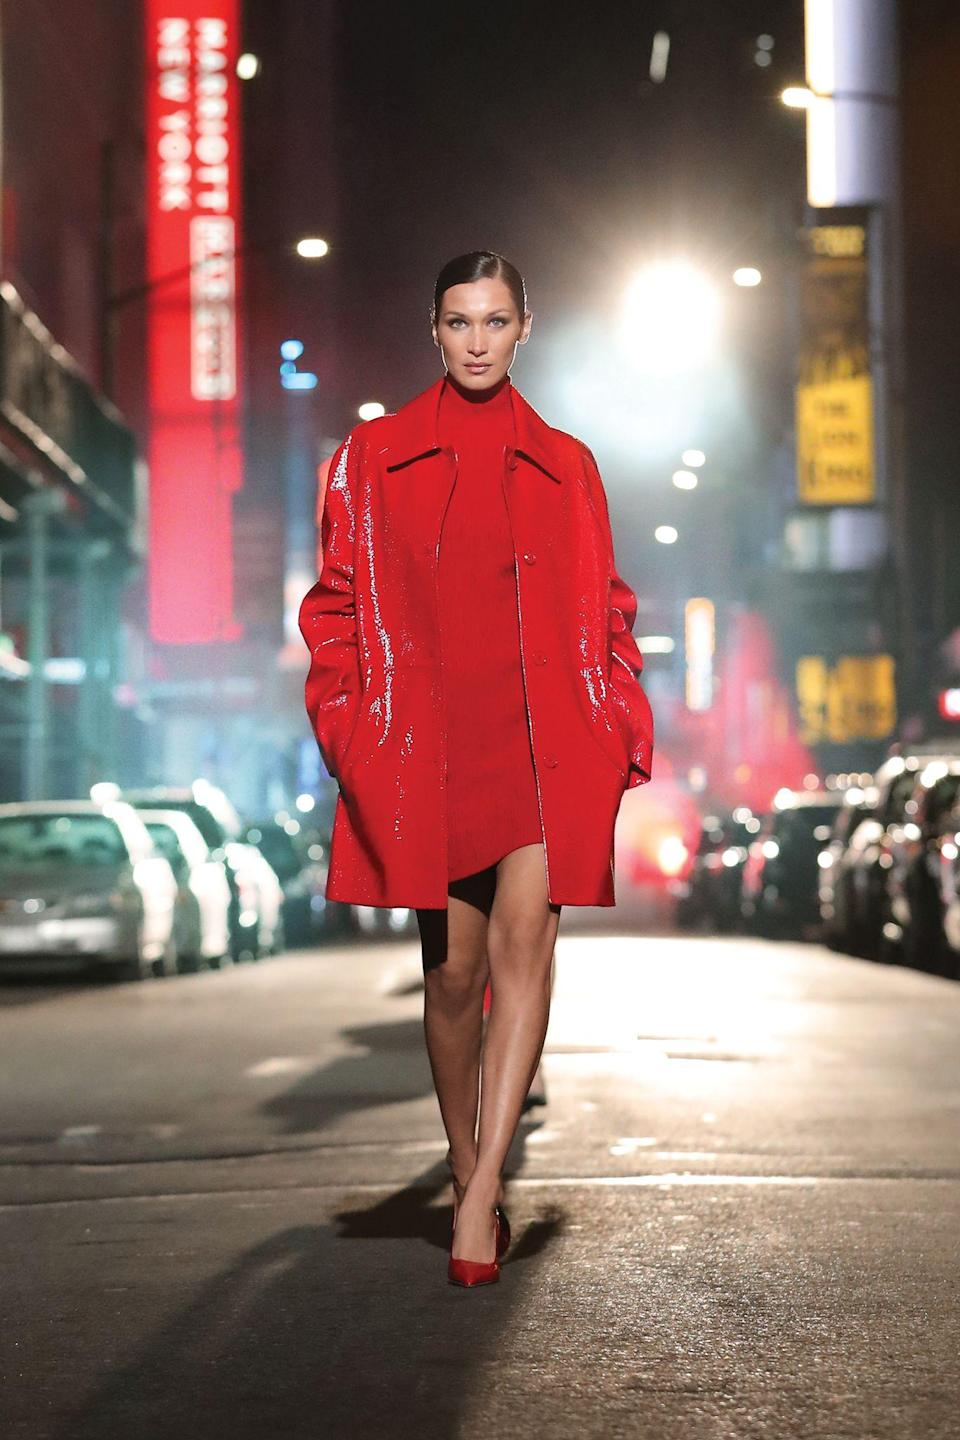 "<p><a href=""https://www.elle.com/uk/fashion/a31146630/gigi-bella-yolanda-hadid-paris-fashion-week/"" rel=""nofollow noopener"" target=""_blank"" data-ylk=""slk:Bella Hadid"" class=""link rapid-noclick-resp"">Bella Hadid</a> might have started out a tad later than her sister <a href=""https://www.elle.com/uk/fashion/articles/g31503/gigi-hadid-best-runway-looks/"" rel=""nofollow noopener"" target=""_blank"" data-ylk=""slk:Gigi Hadid"" class=""link rapid-noclick-resp"">Gigi Hadid </a>when it comes to appearing in all the top runway show for the major fashion houses, but after a very successful couple of last seasons, we predict big things to continue for her in SS21. See it all unfold here. </p>"